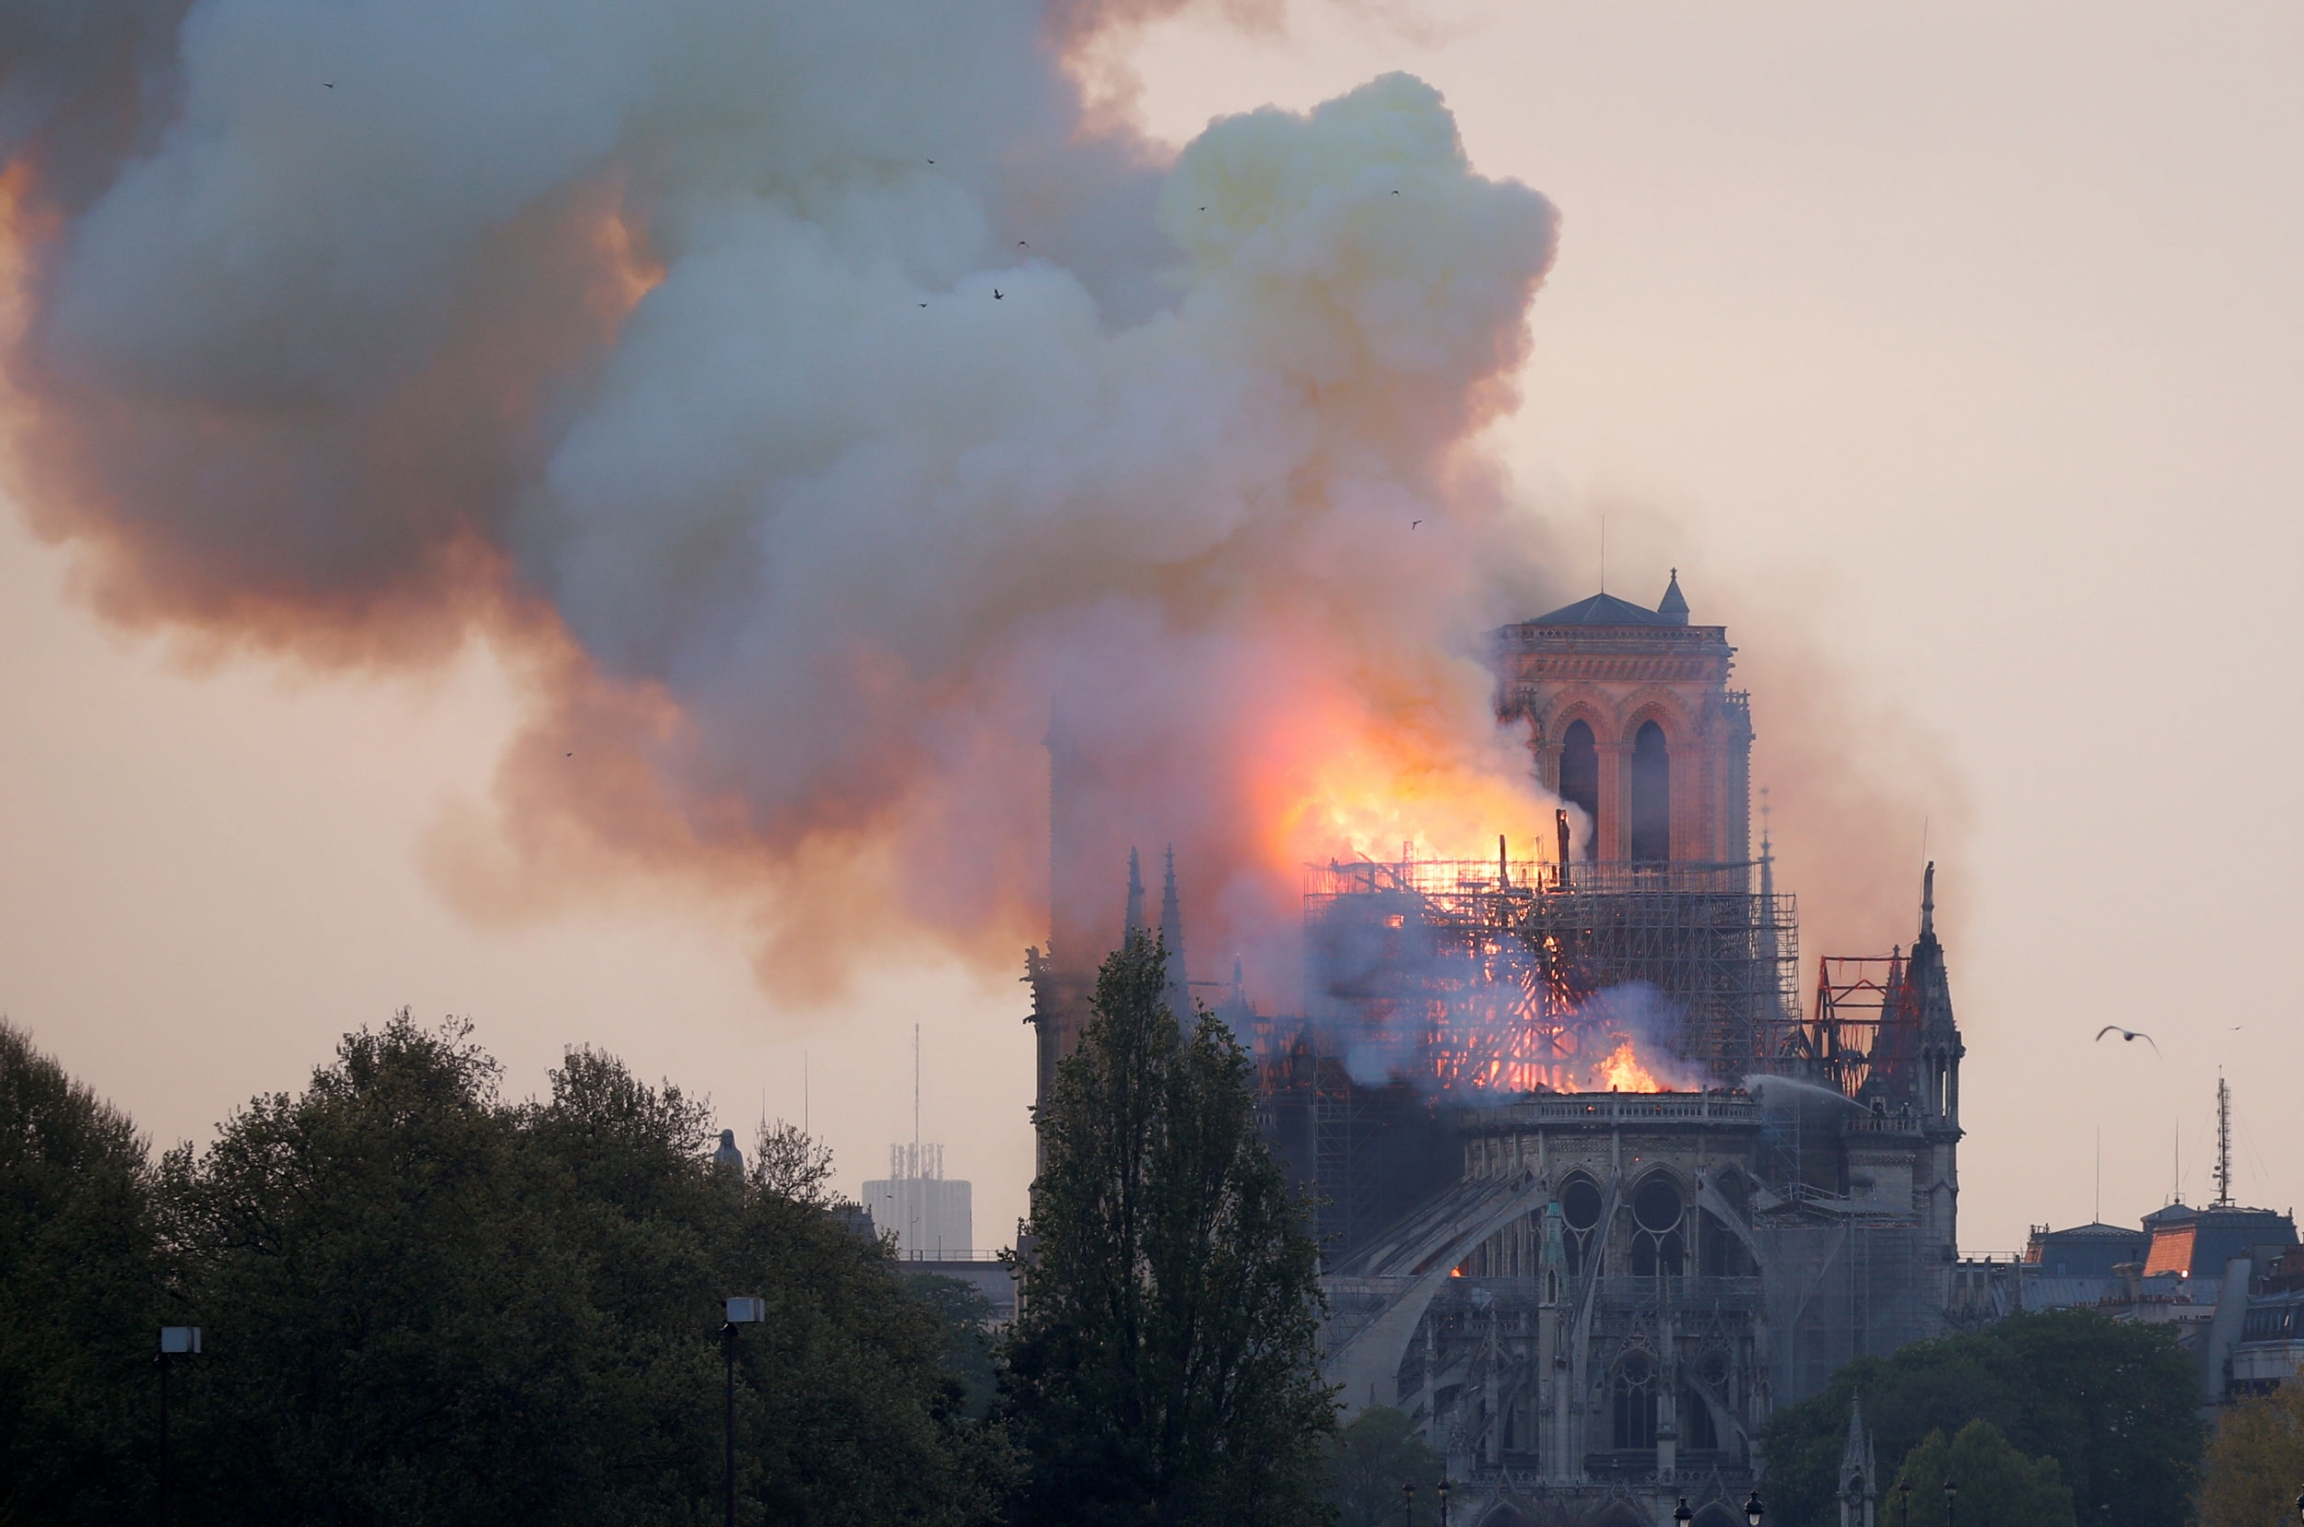 A photo shows the top of the Notre Dame cathedral on fire.